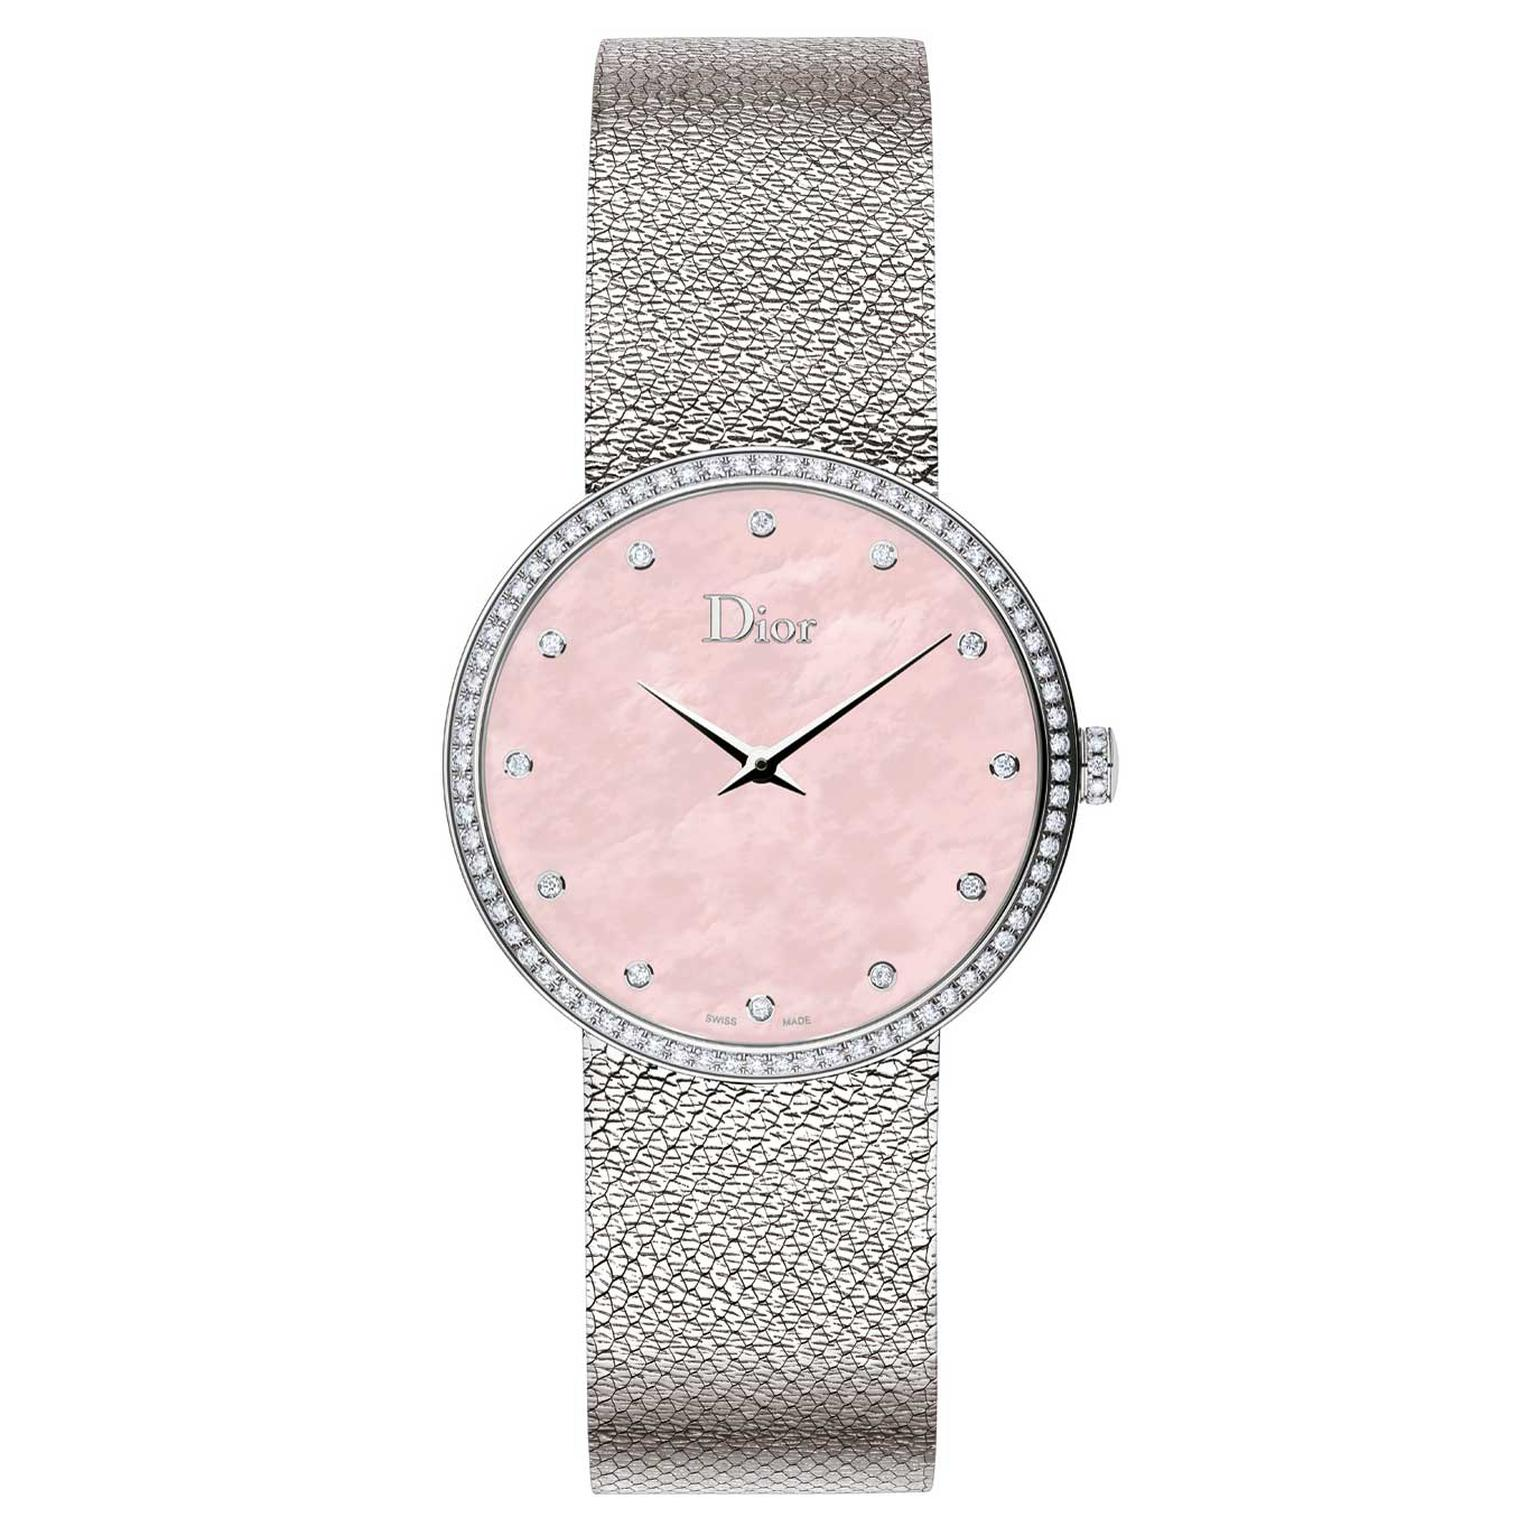 La D de Dior Satine watch with a pink mother-of-pearl dial and diamonds